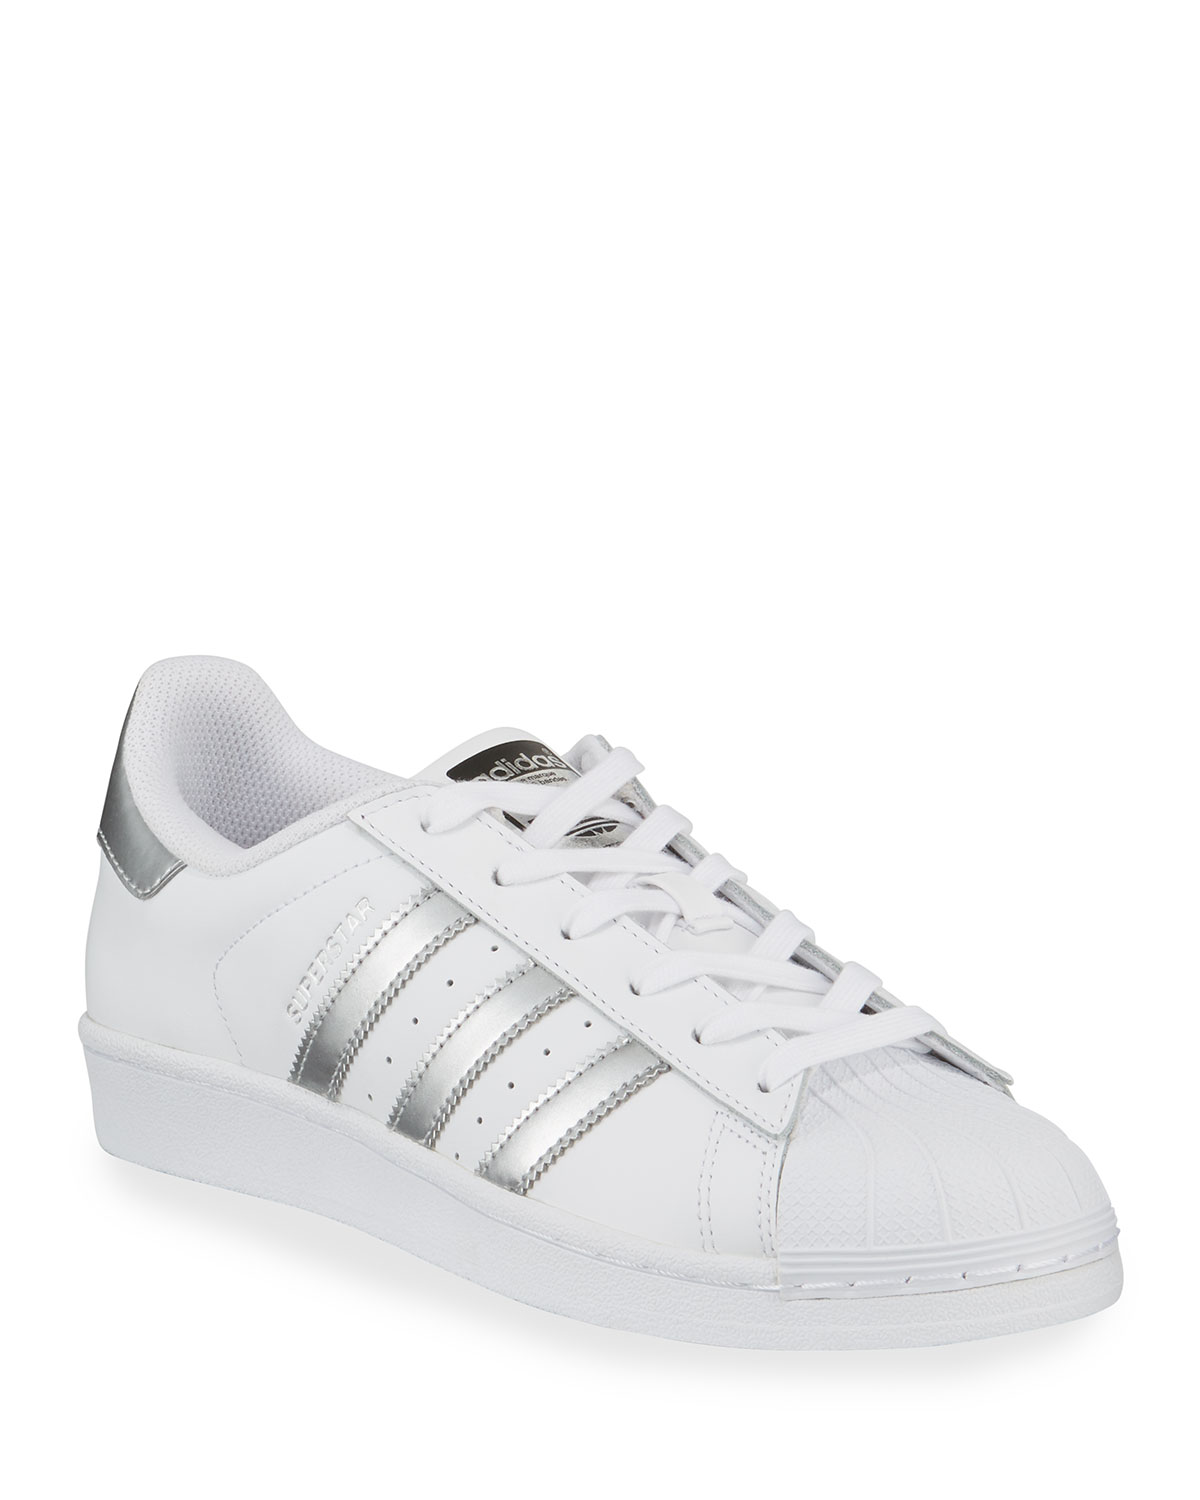 Superstar Original Fashion Sneakers, WhiteSilver